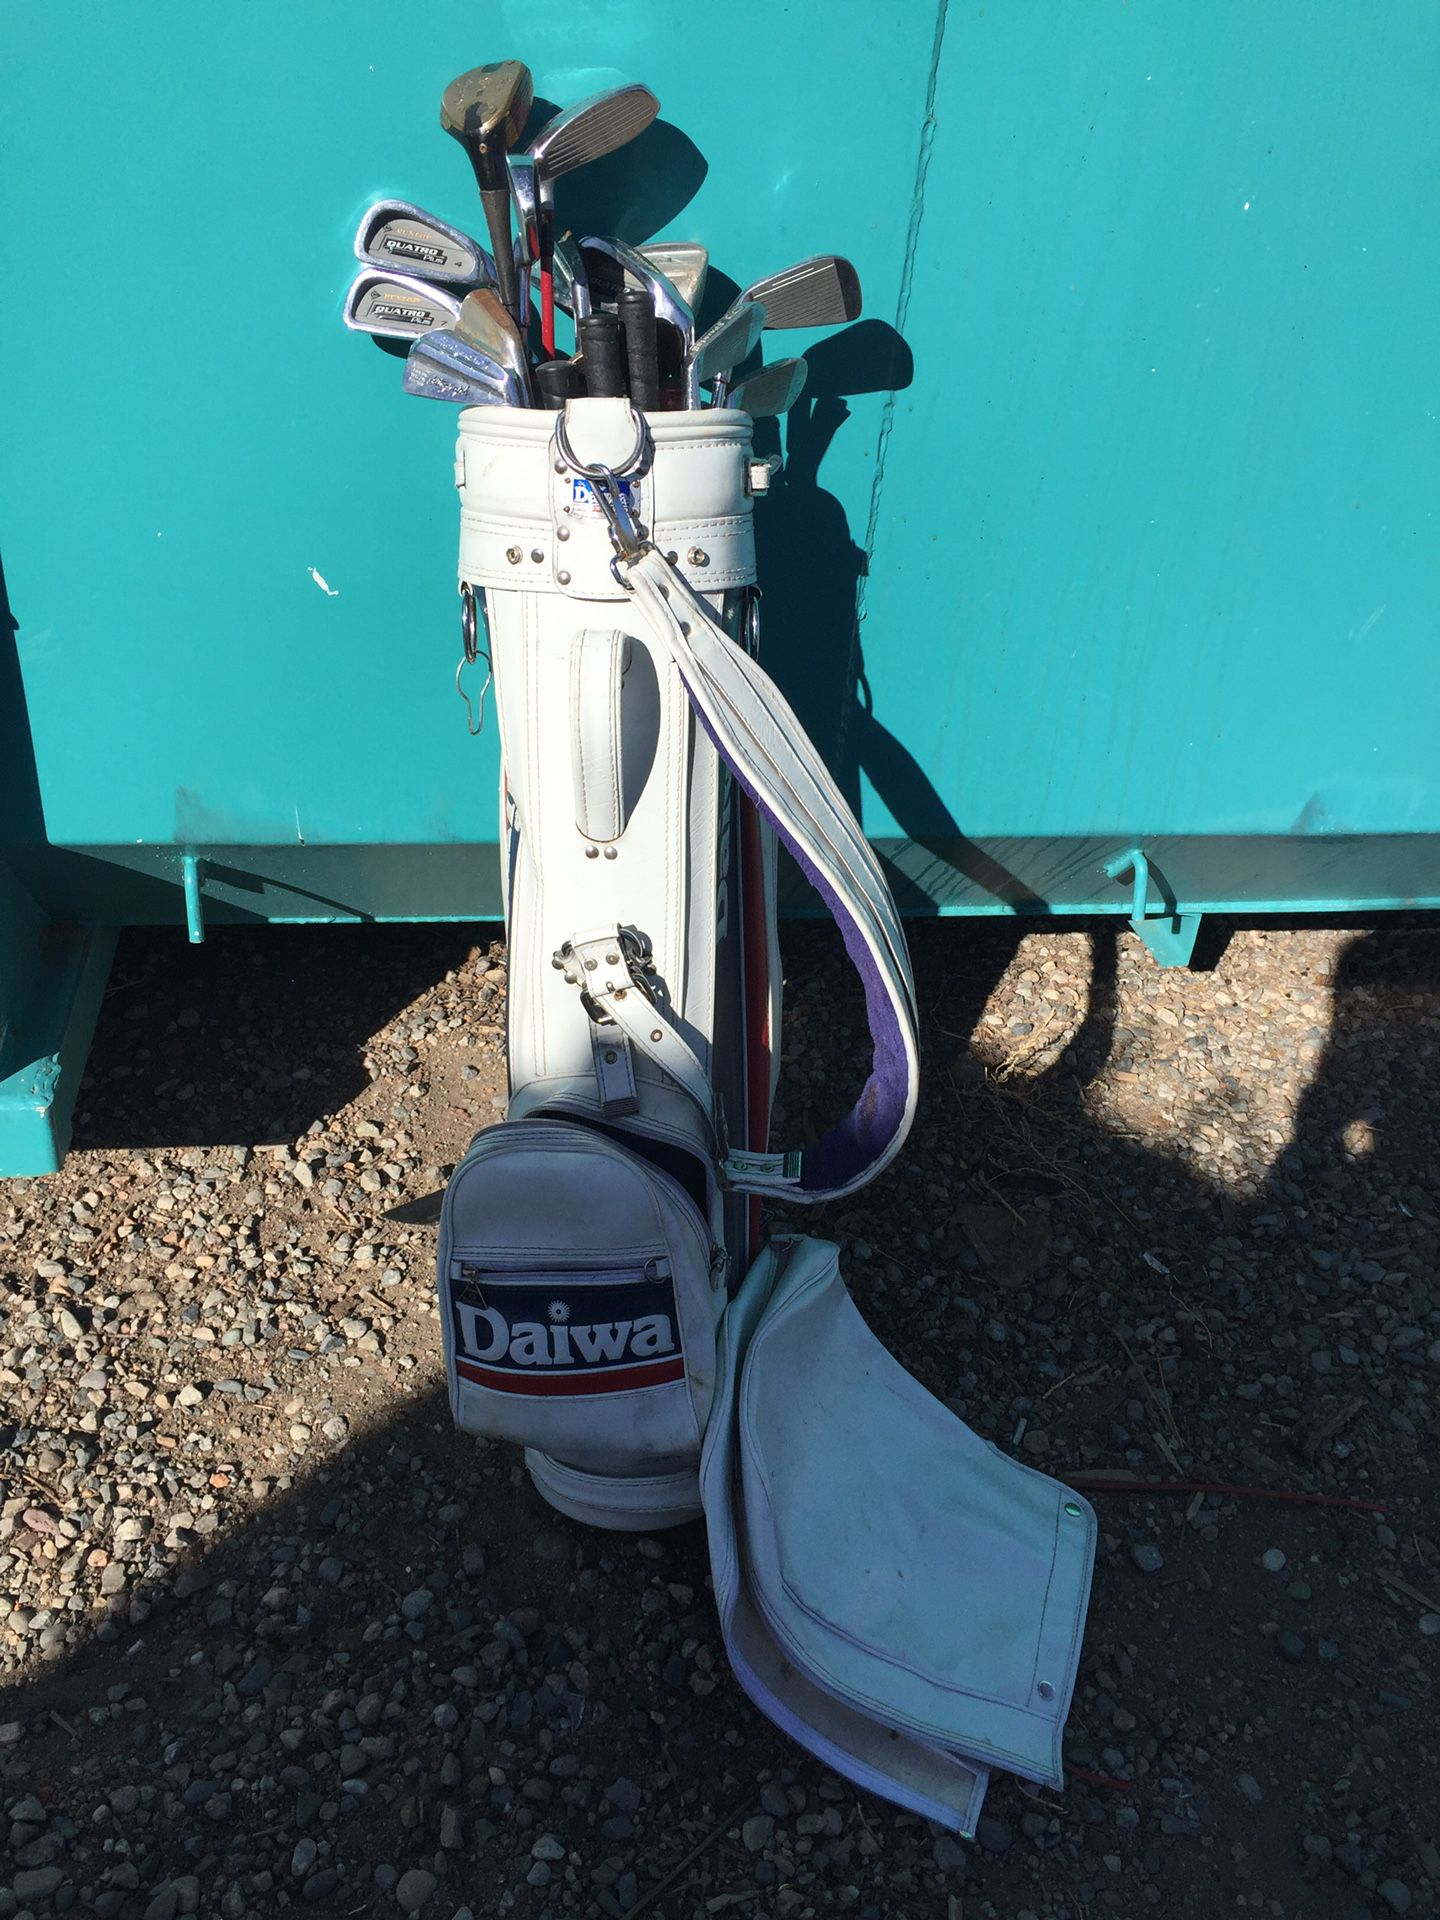 Daiwa White Leather Golf Bag with Balls and Set of Clubs